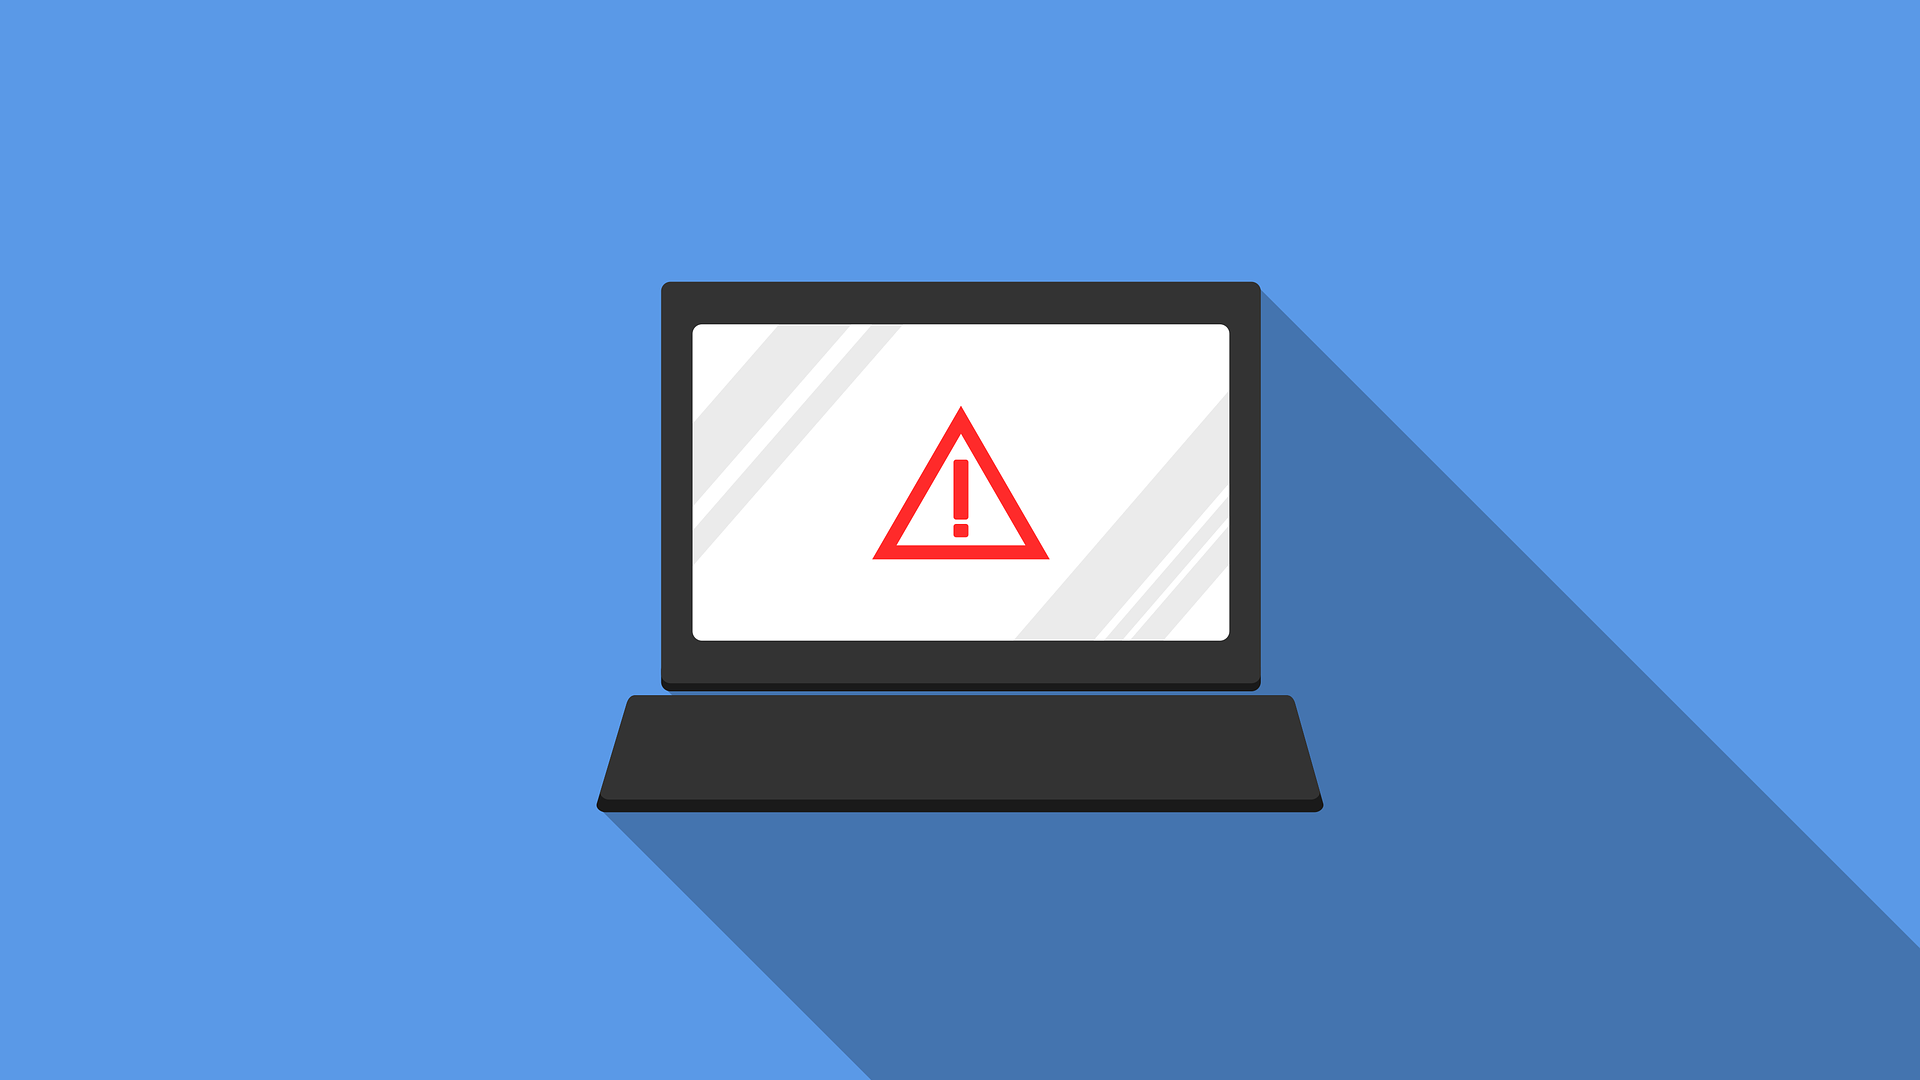 Known bugs and predictable phishing are behind your average security incident, IBM says - CyberScoop